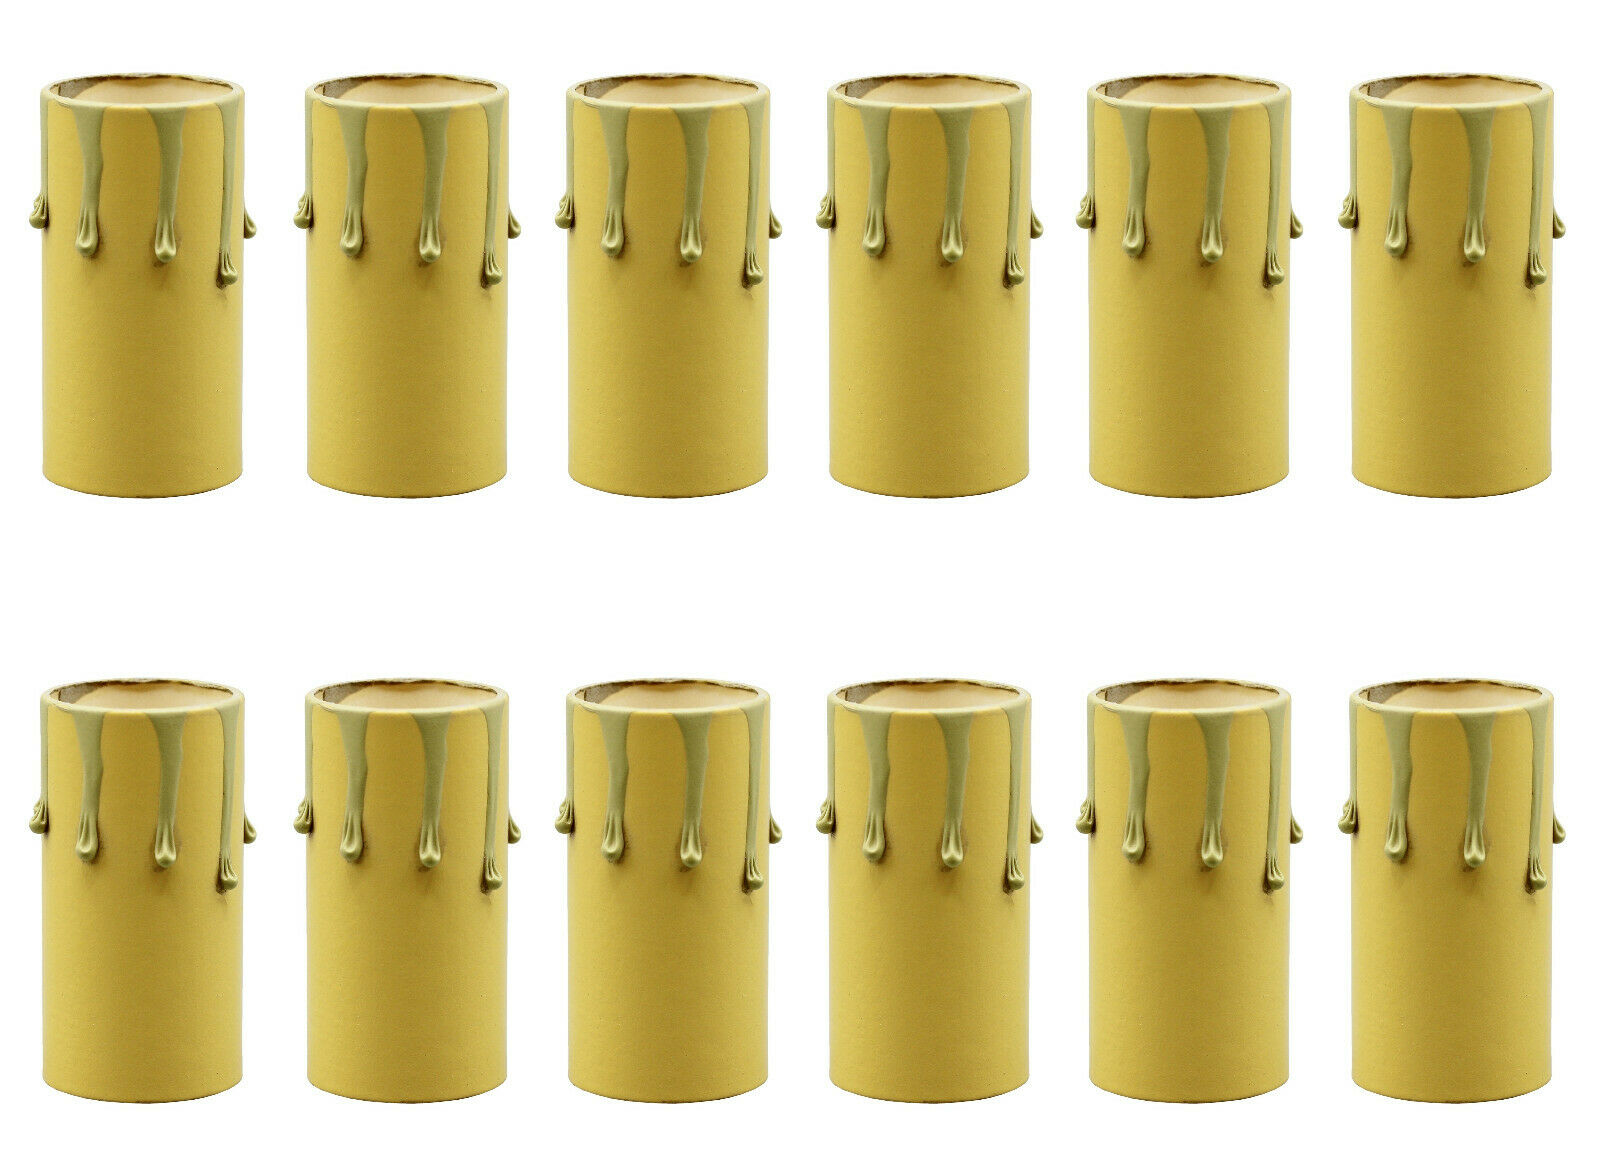 1 3/4 Inch Tall Antique Ivory Drip Candle Socket Covers ~ Candelabra Base 50 Pcs Collectibles